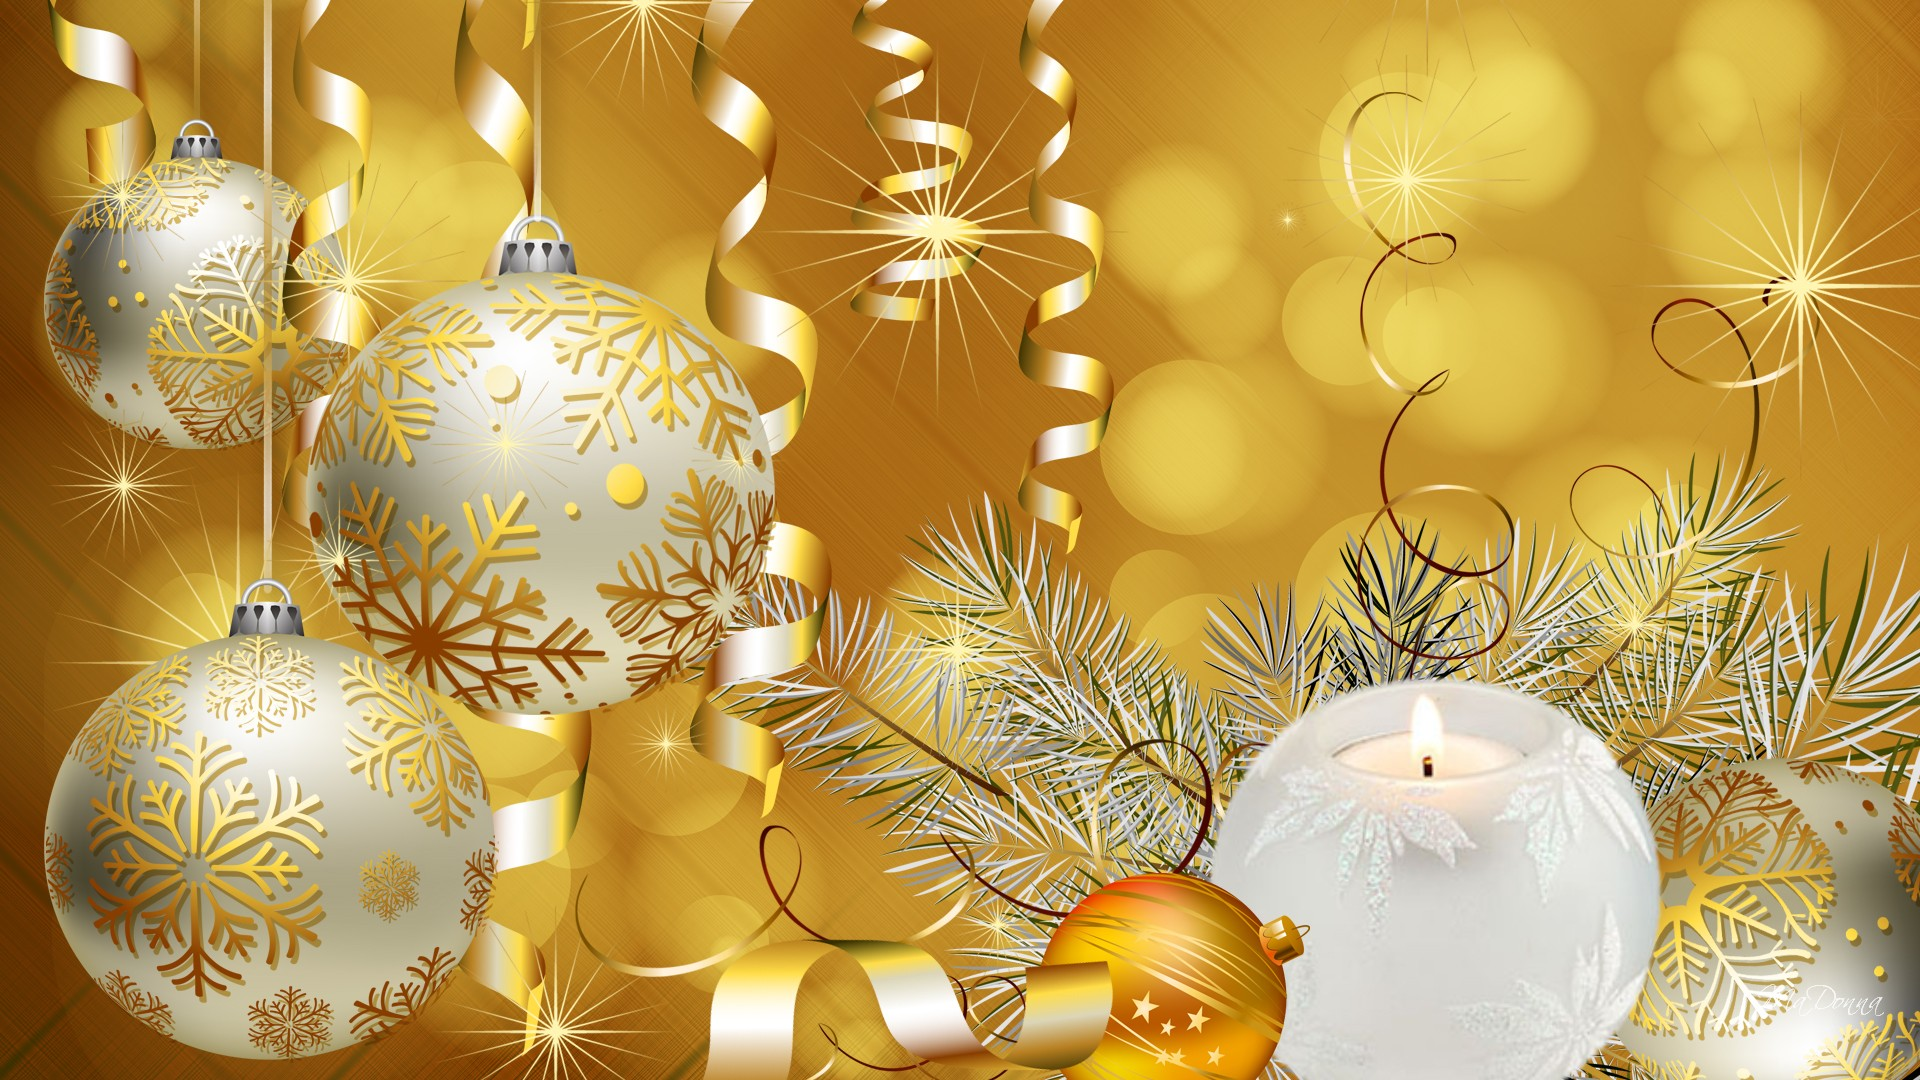 187 1878203 gold christmas background wallpaper merry christmas gold background